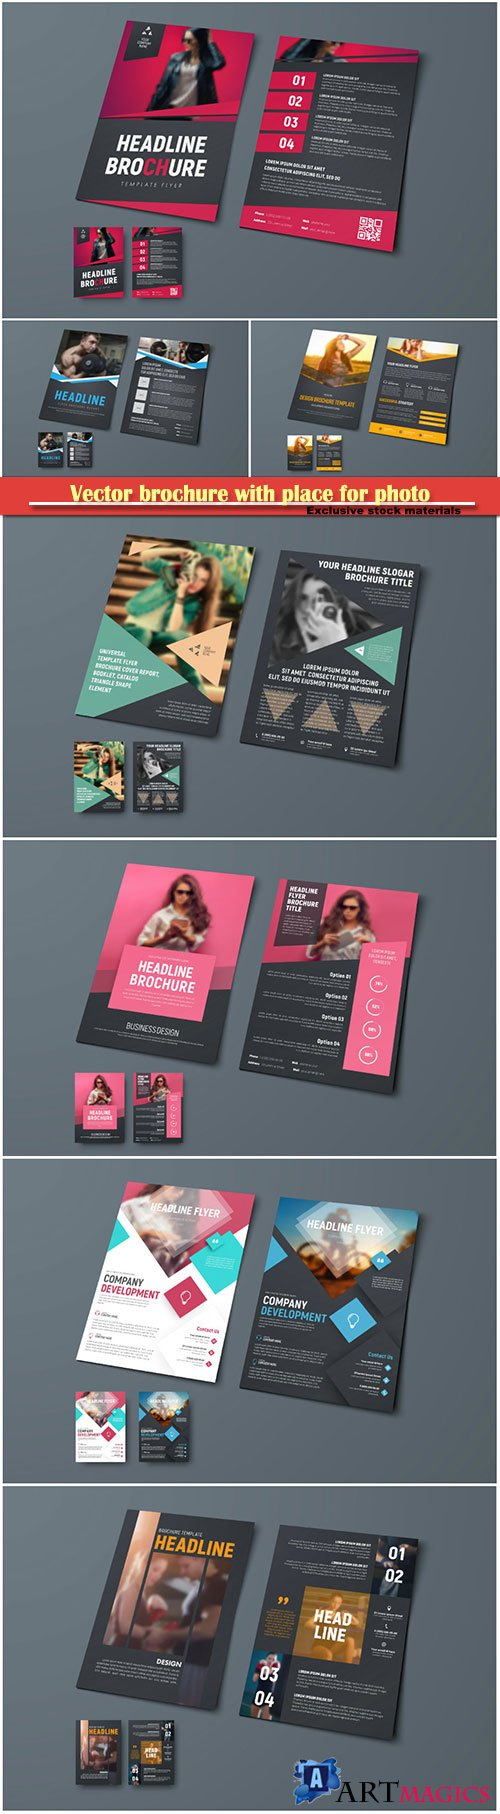 Vector template of brochure with place for photo, design flyer for business, advertising and printing